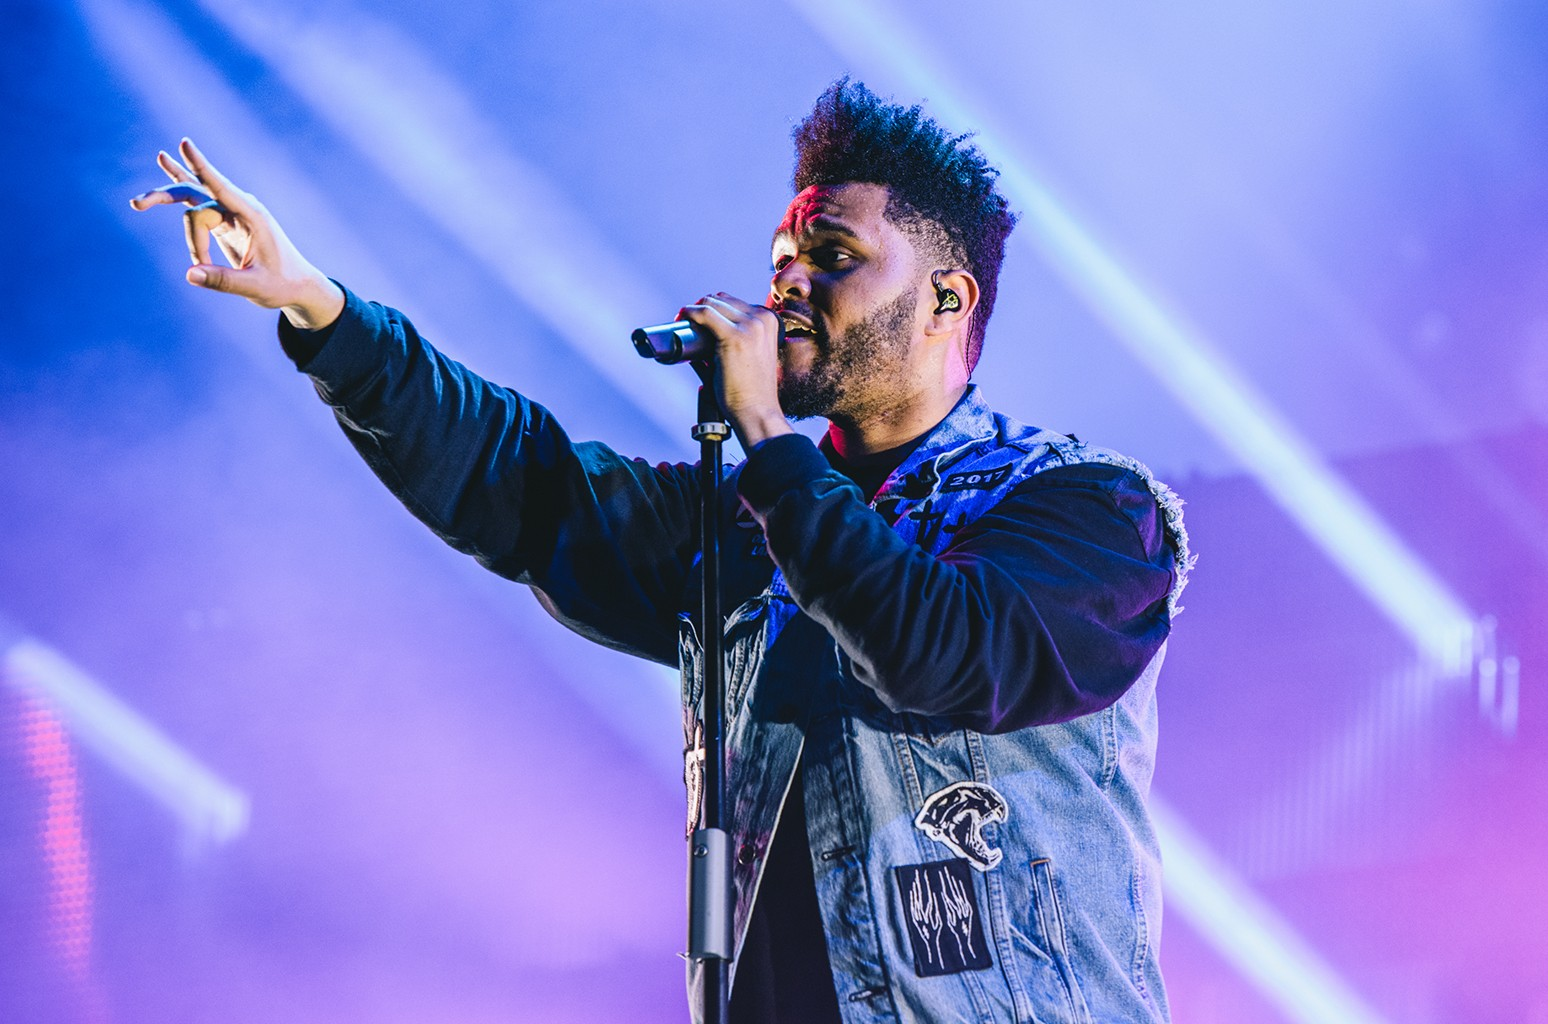 The Weeknd performs live on Day 1 of FIB Festival on July 13, 2017 in Benicassim, Spain.